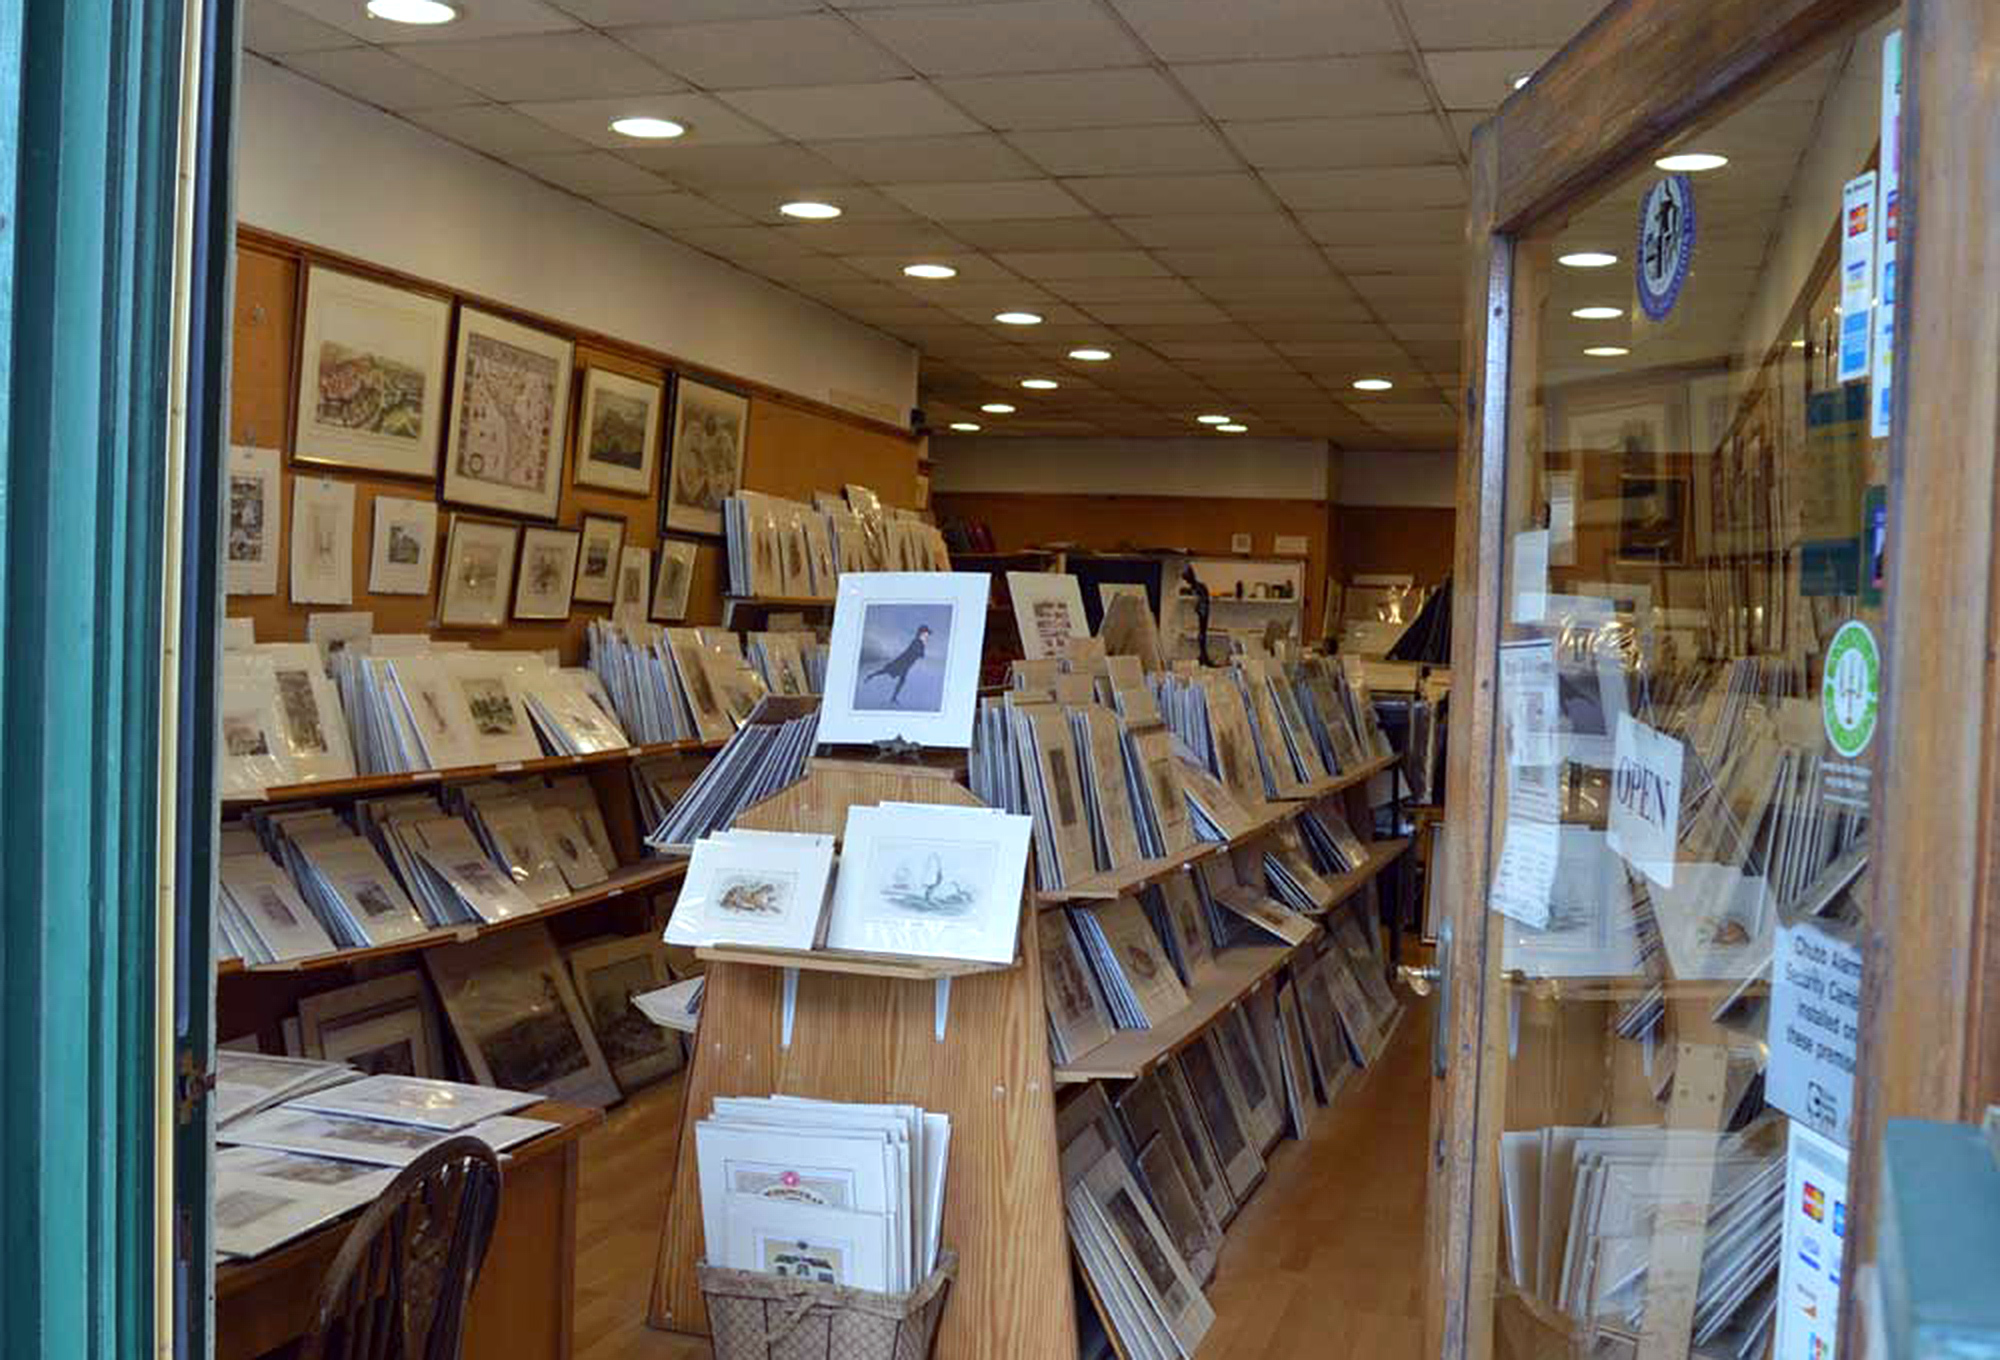 View into Royal Mile Gallery, Edinburgh of wooden shelves carrying vintage maps and prints, .